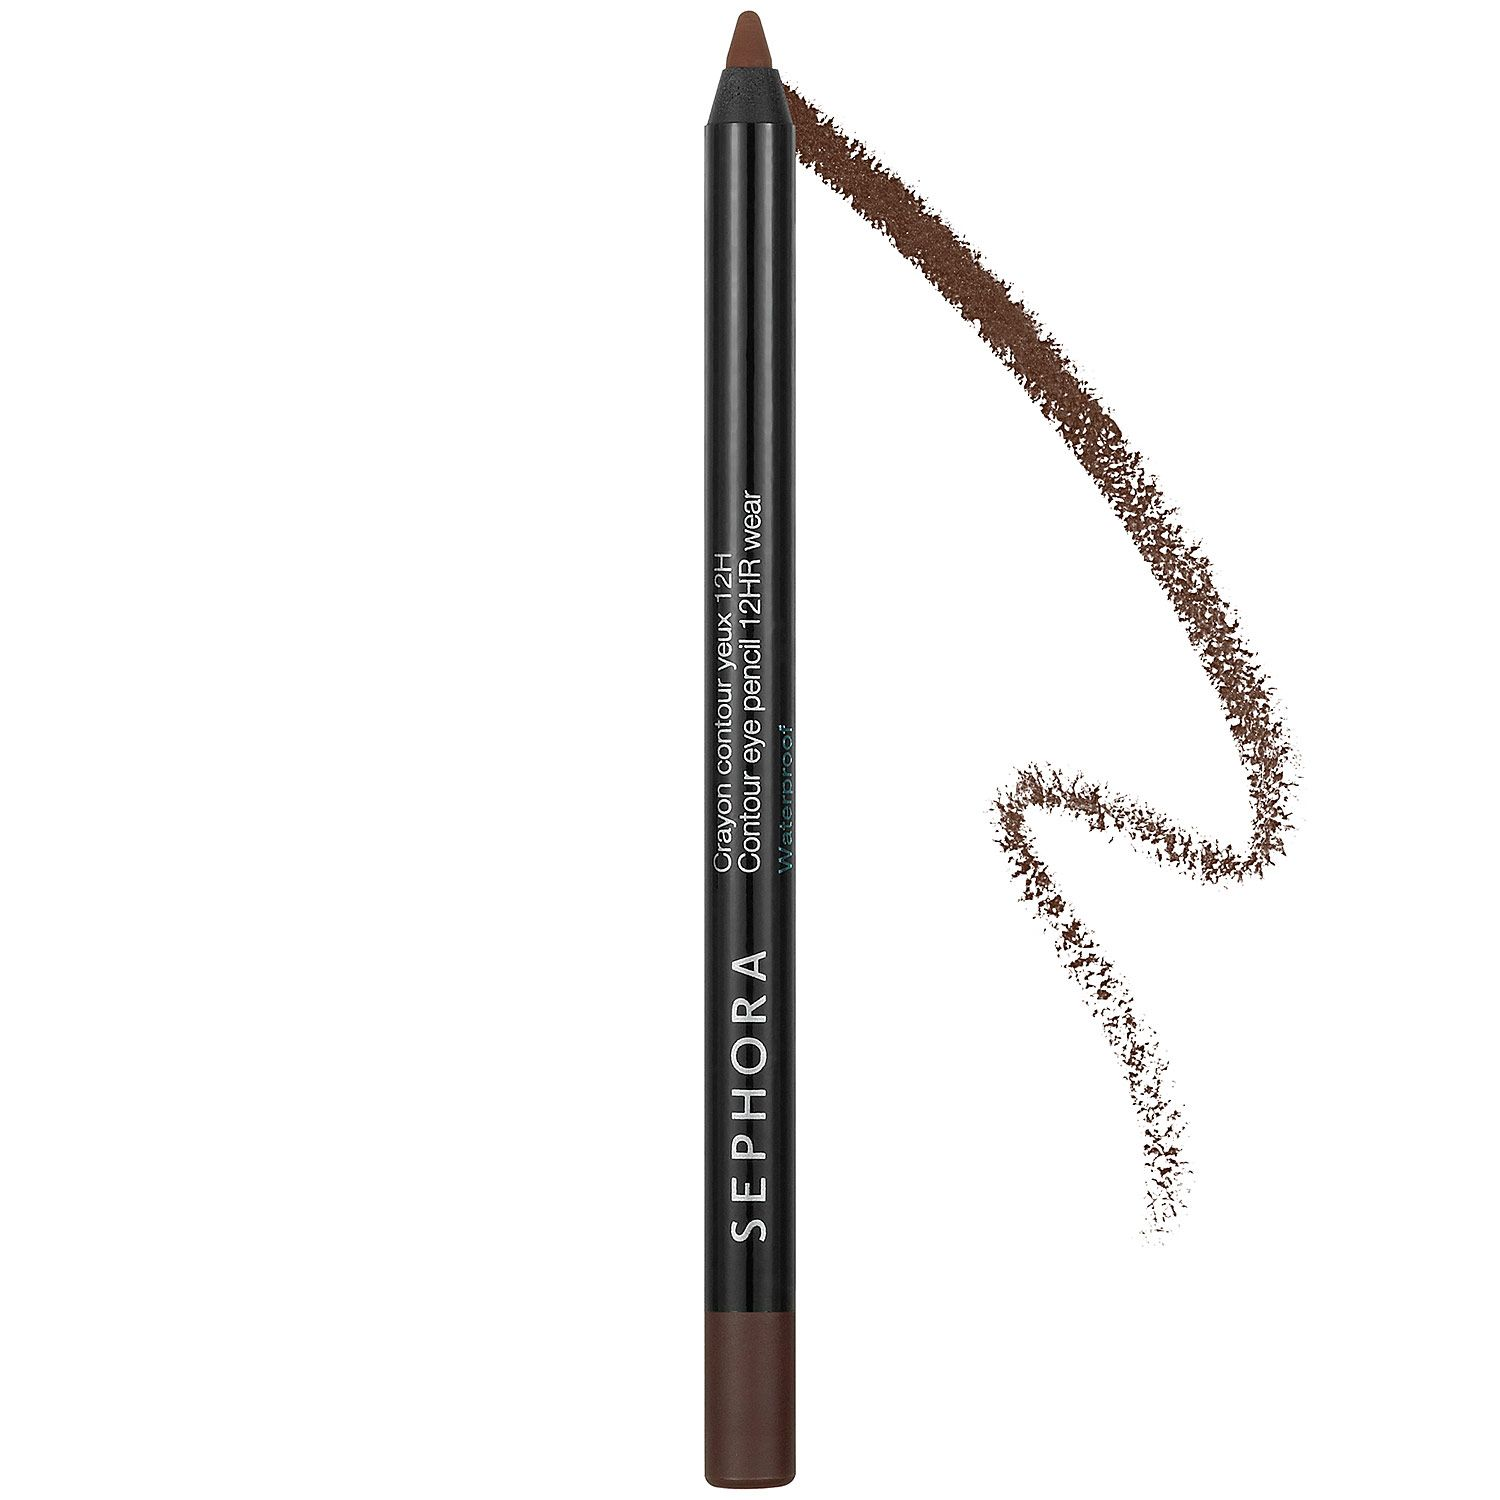 What it is:A contouring eye pencil for a big, beautiful look that lasts up to 12 hours.   What it does: Enhance and enliven your eyes with the bold, long-wearing color of these eye pencils. The silky formula is resistant to water, heat, and humidi